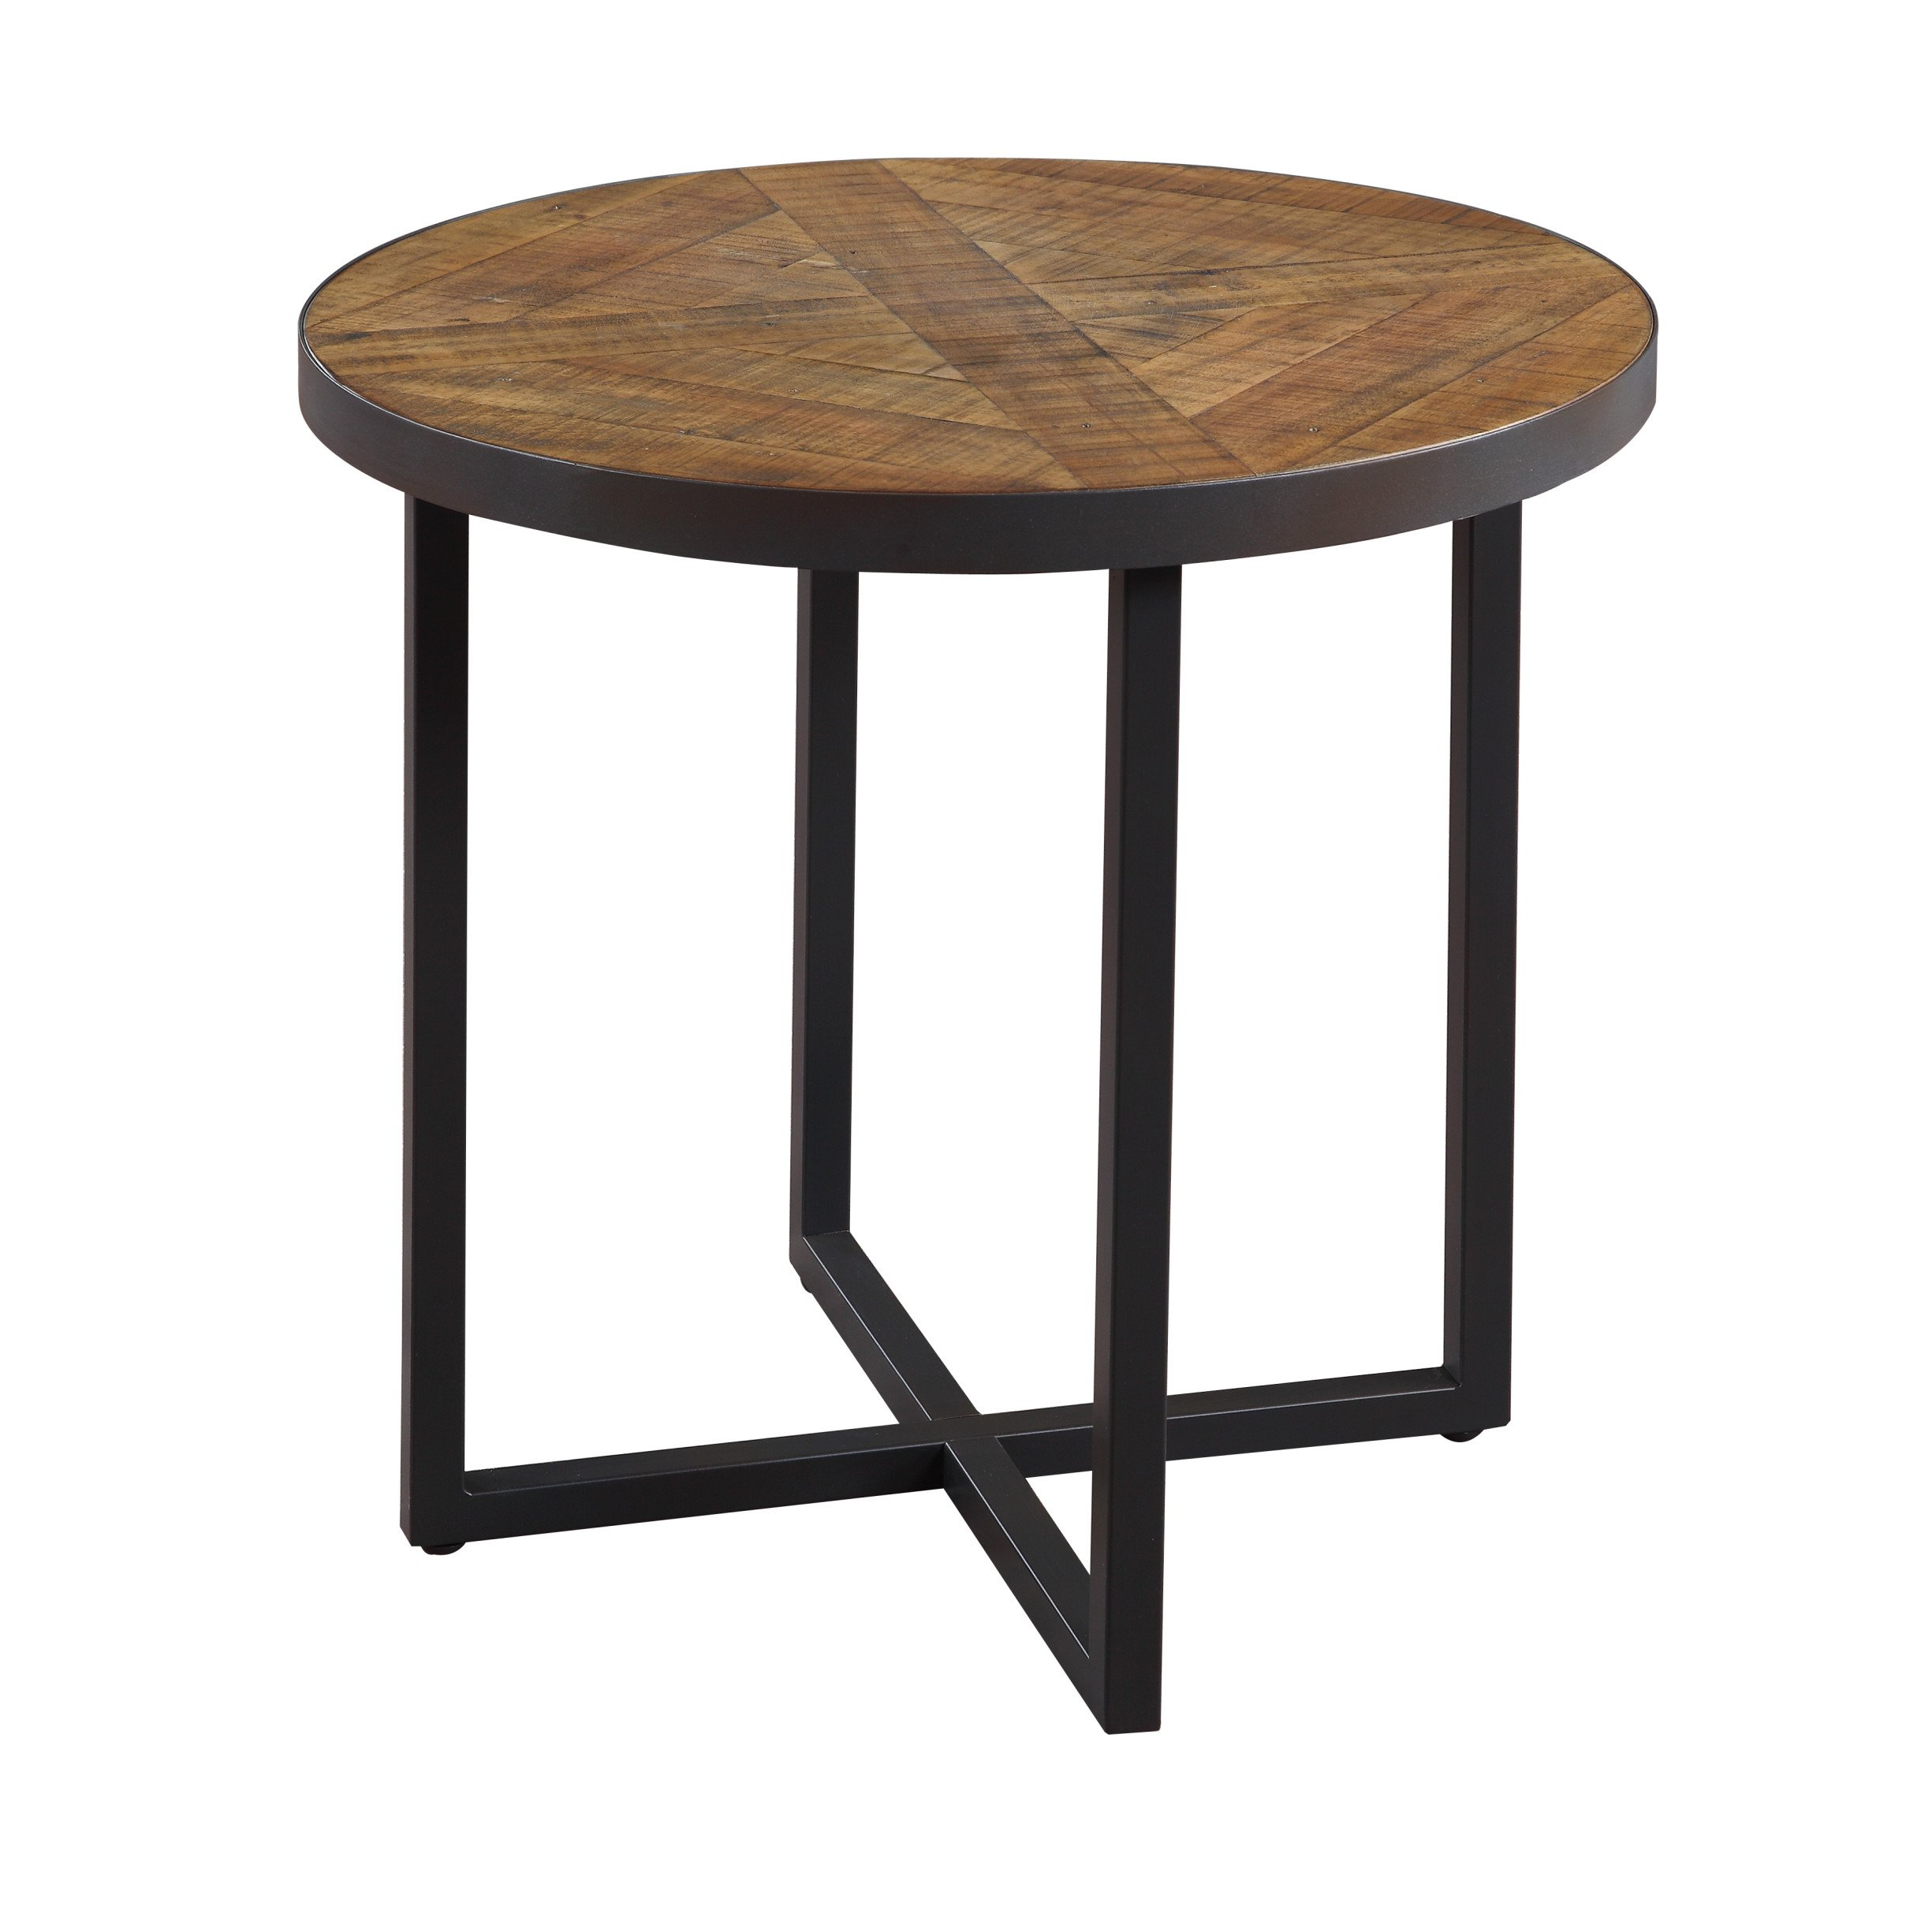 Emerald Home Denton Antique Pine End Table with Round, Pieced Top And Metal Base by Emerald Home Furnishings